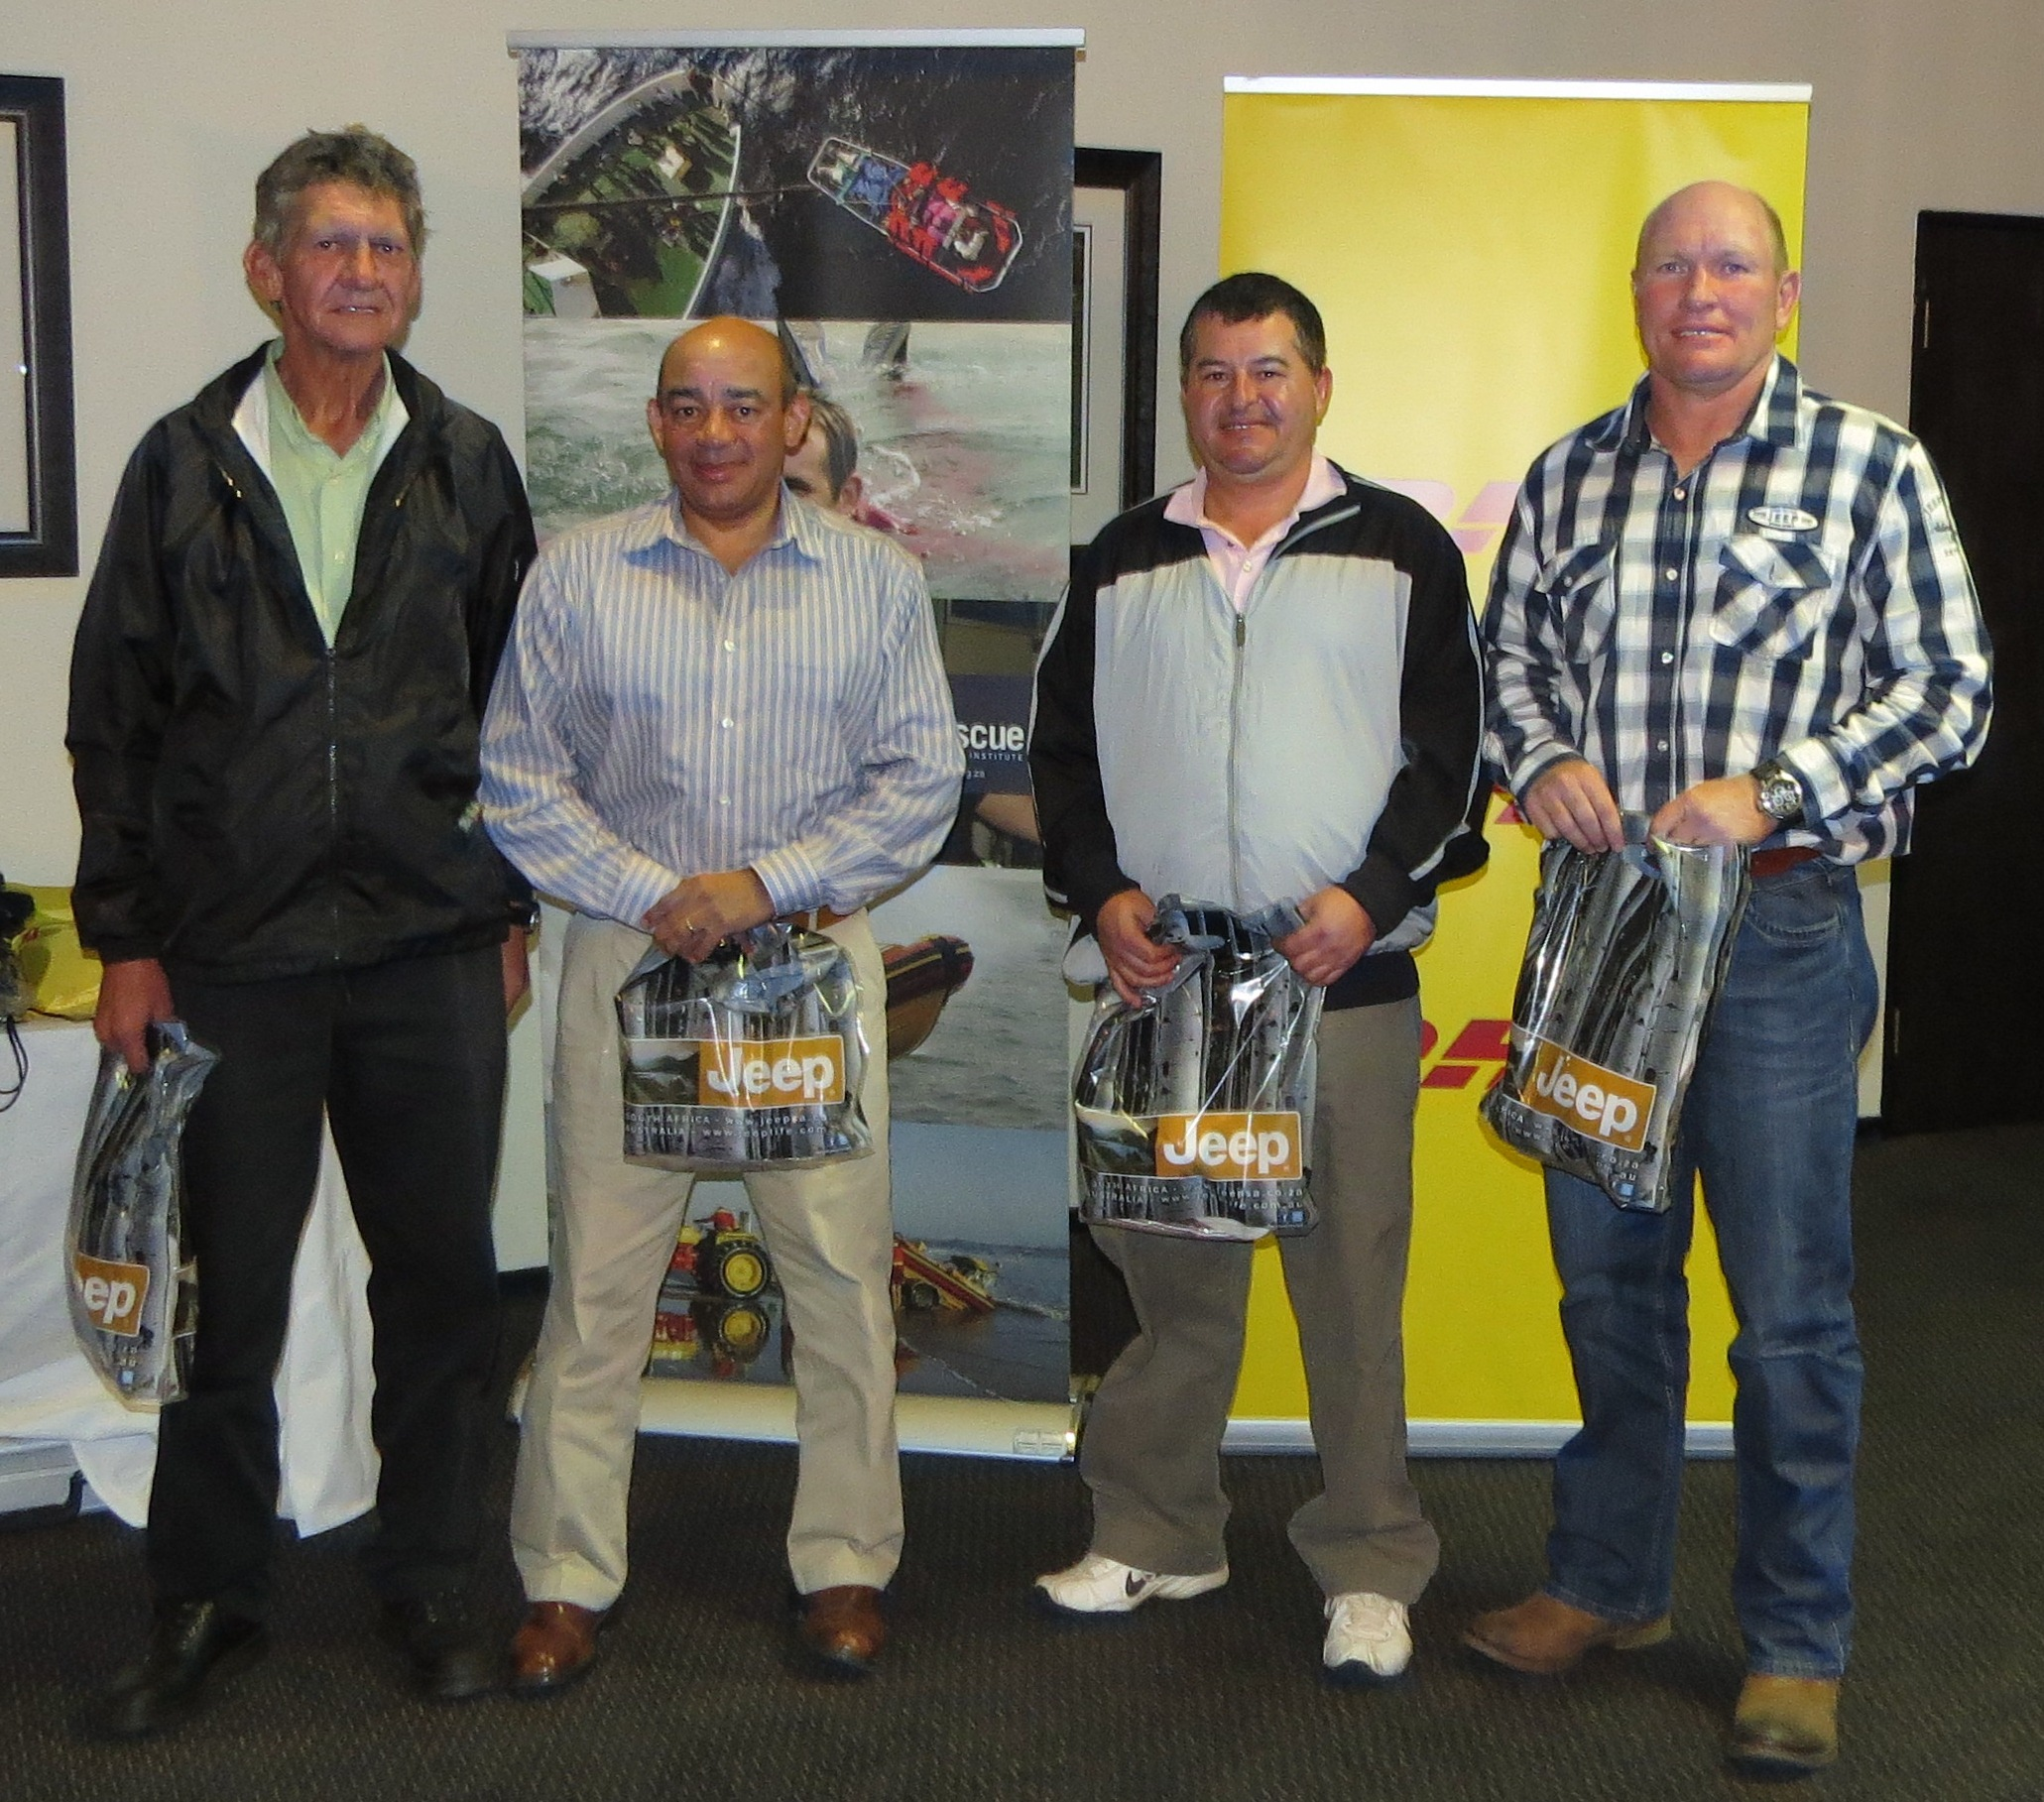 3rd place went to the MACS Maritime 4ball - Pieter Brandon, Mark Smith, Yoran Orlanov & Andre Roux